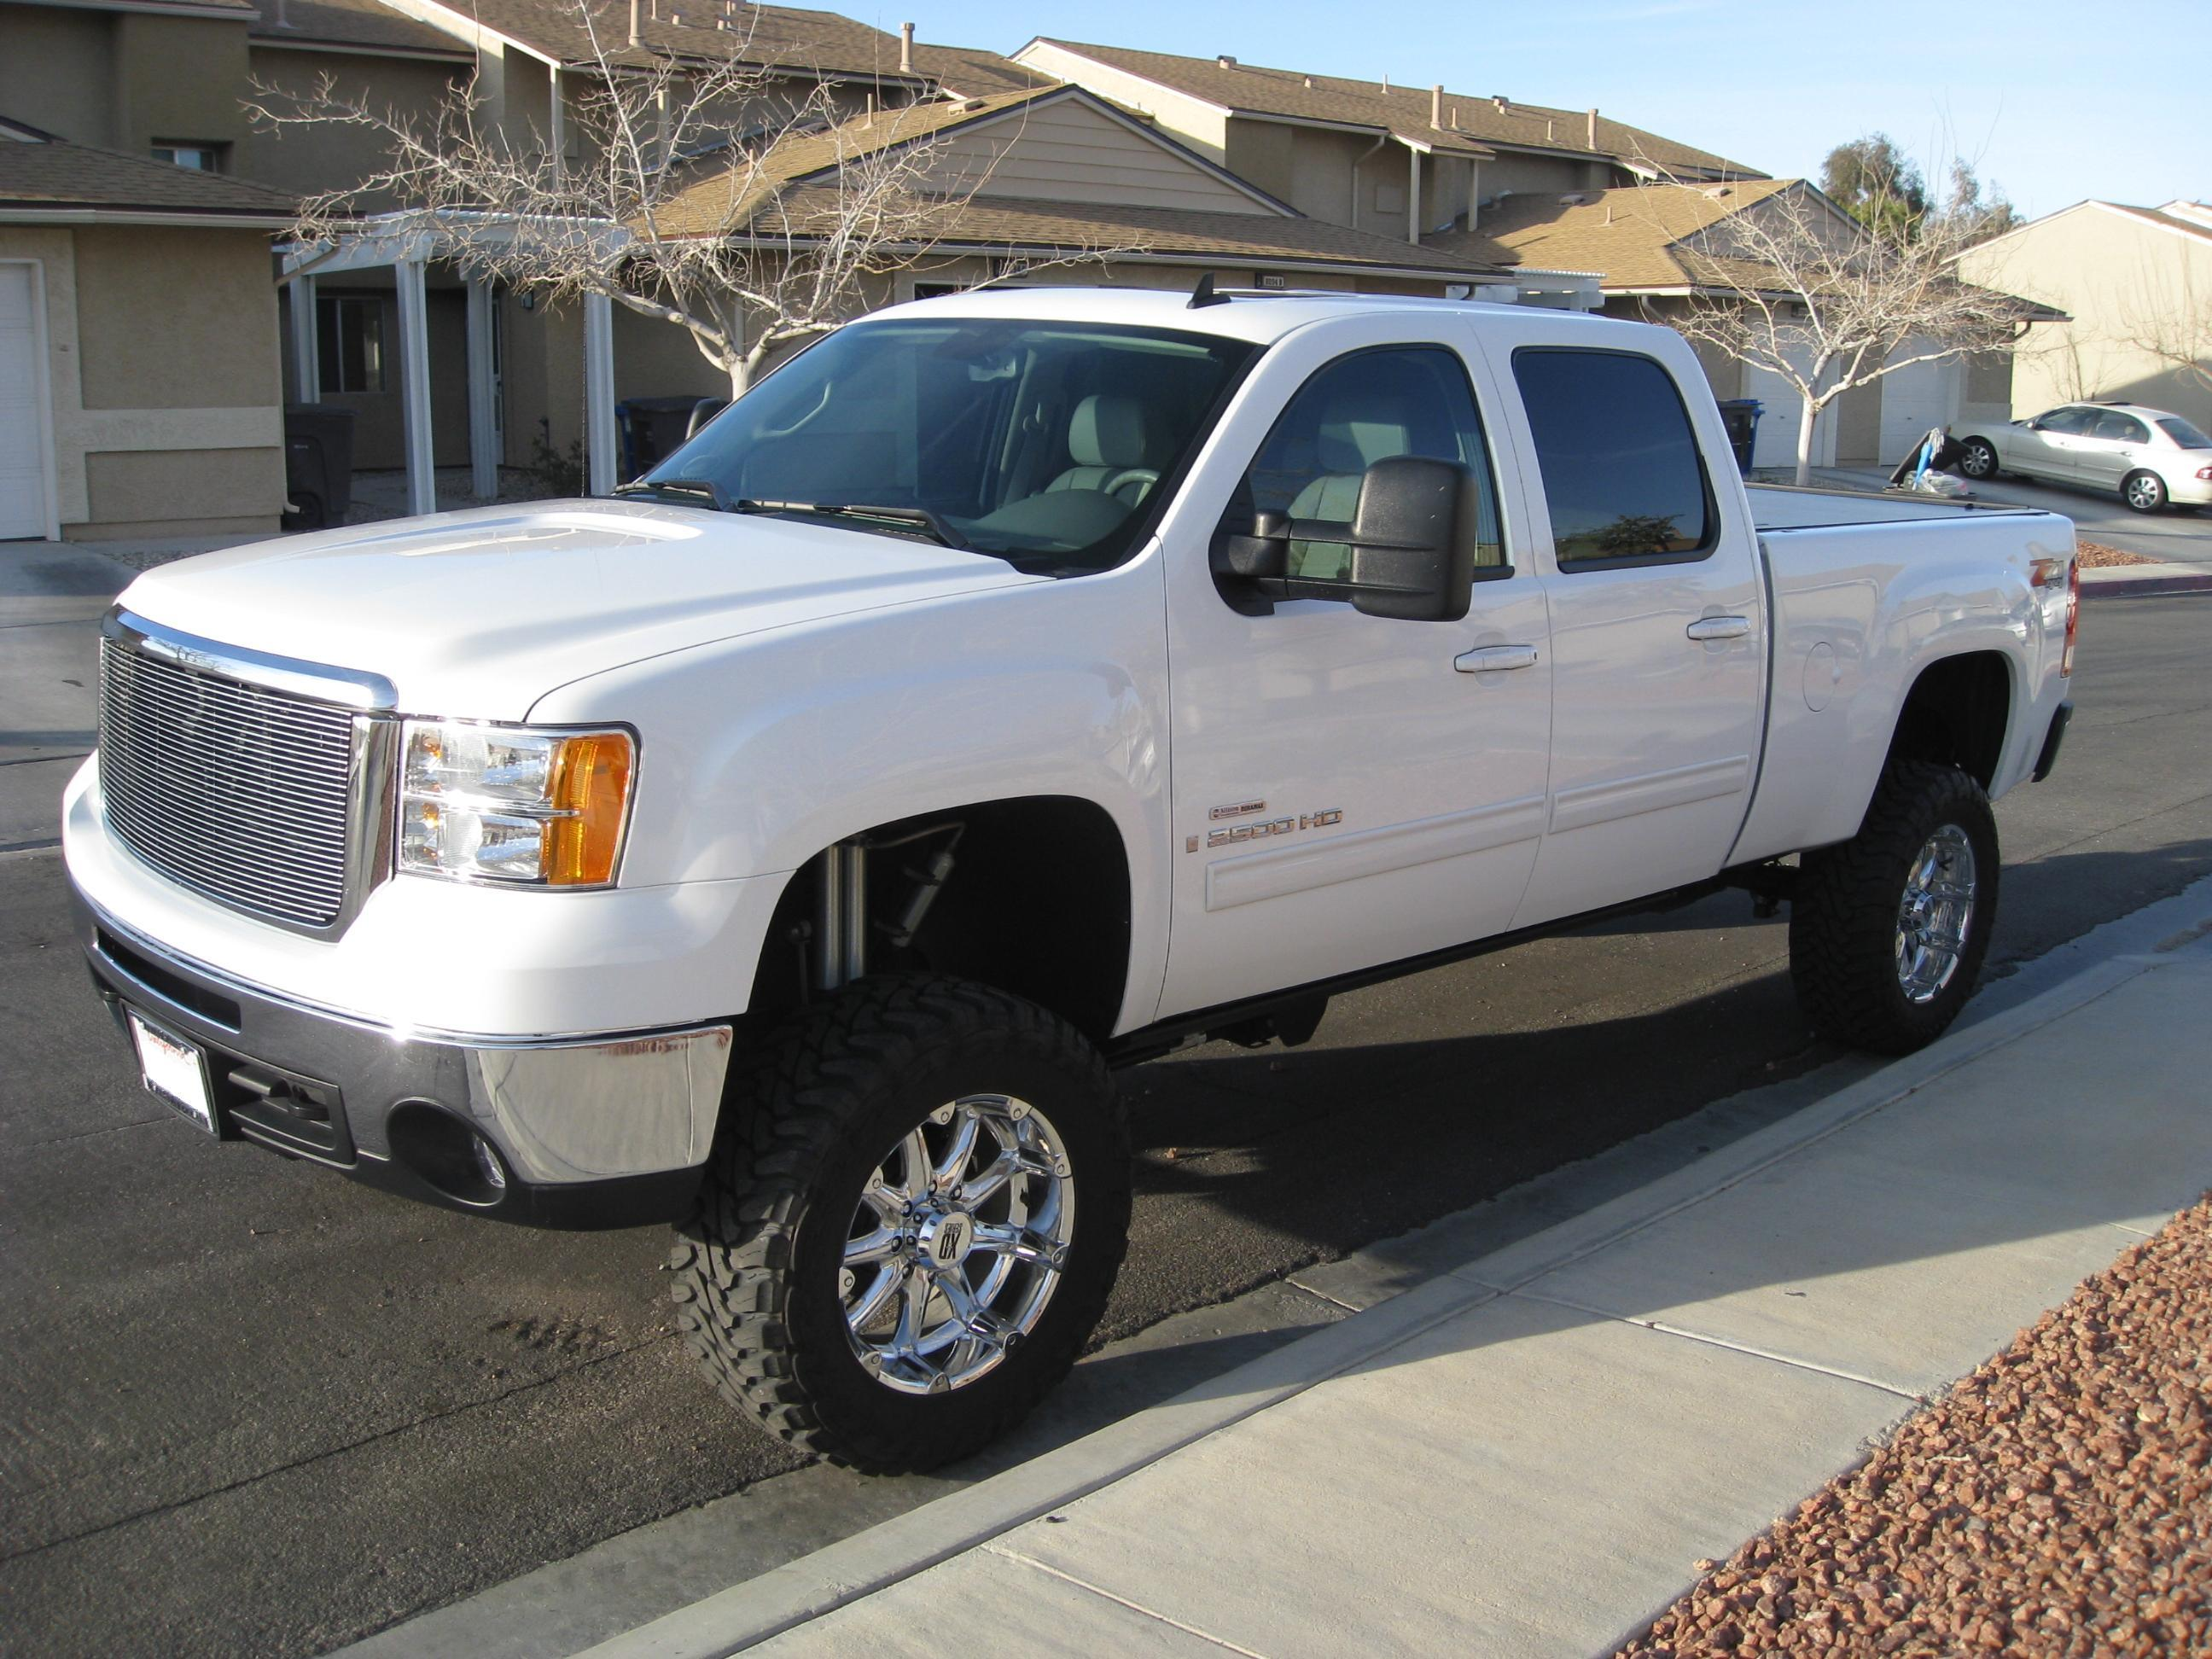 2008 Gmc Sierra 2500hd Information And Photos Zombiedrive